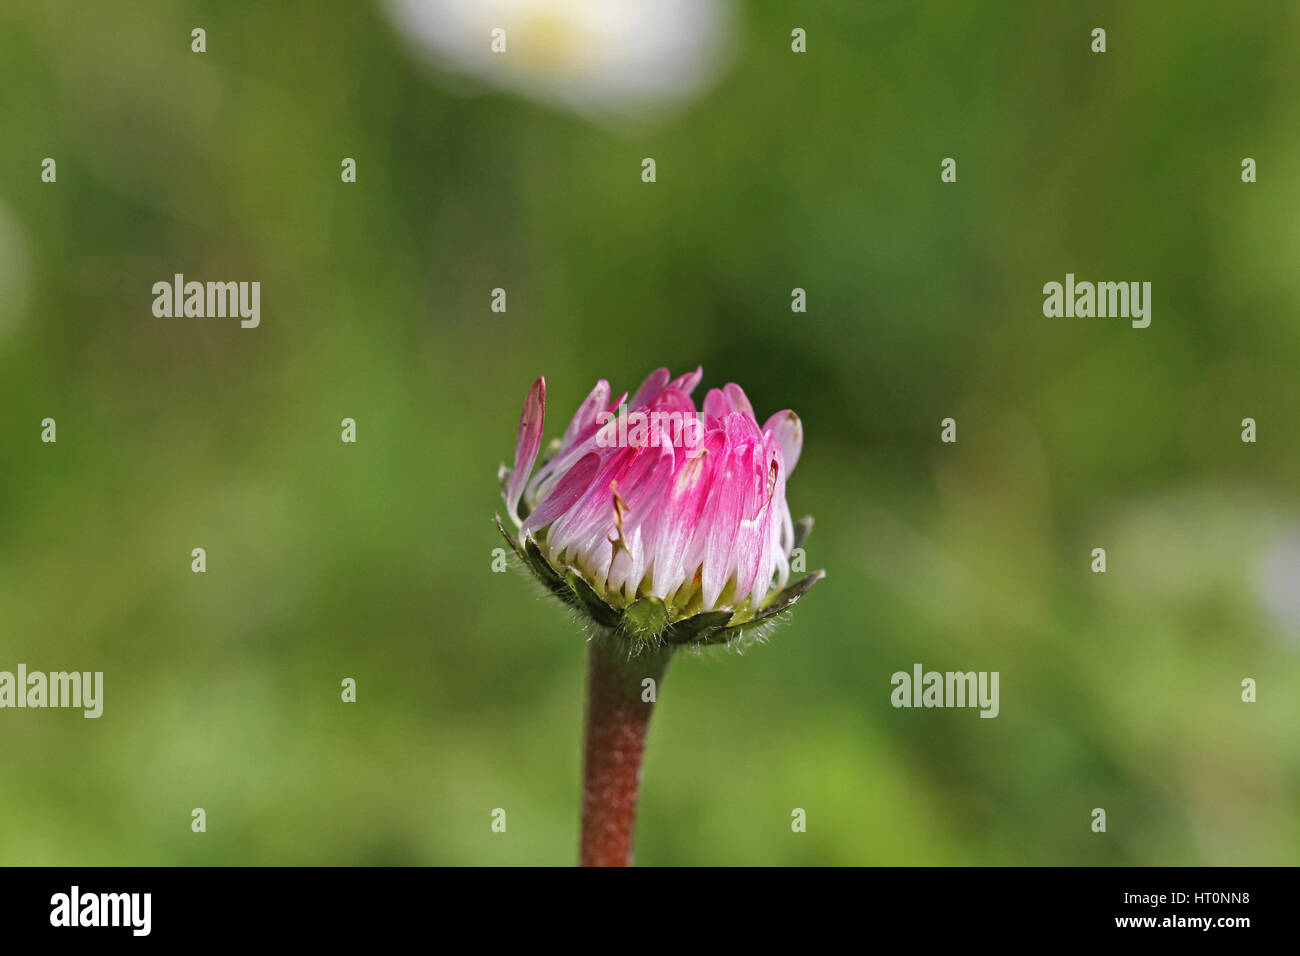 common European lawn daisy bud very close up Latin name bellis perennis compositae hardy perennial at eye level - Stock Image